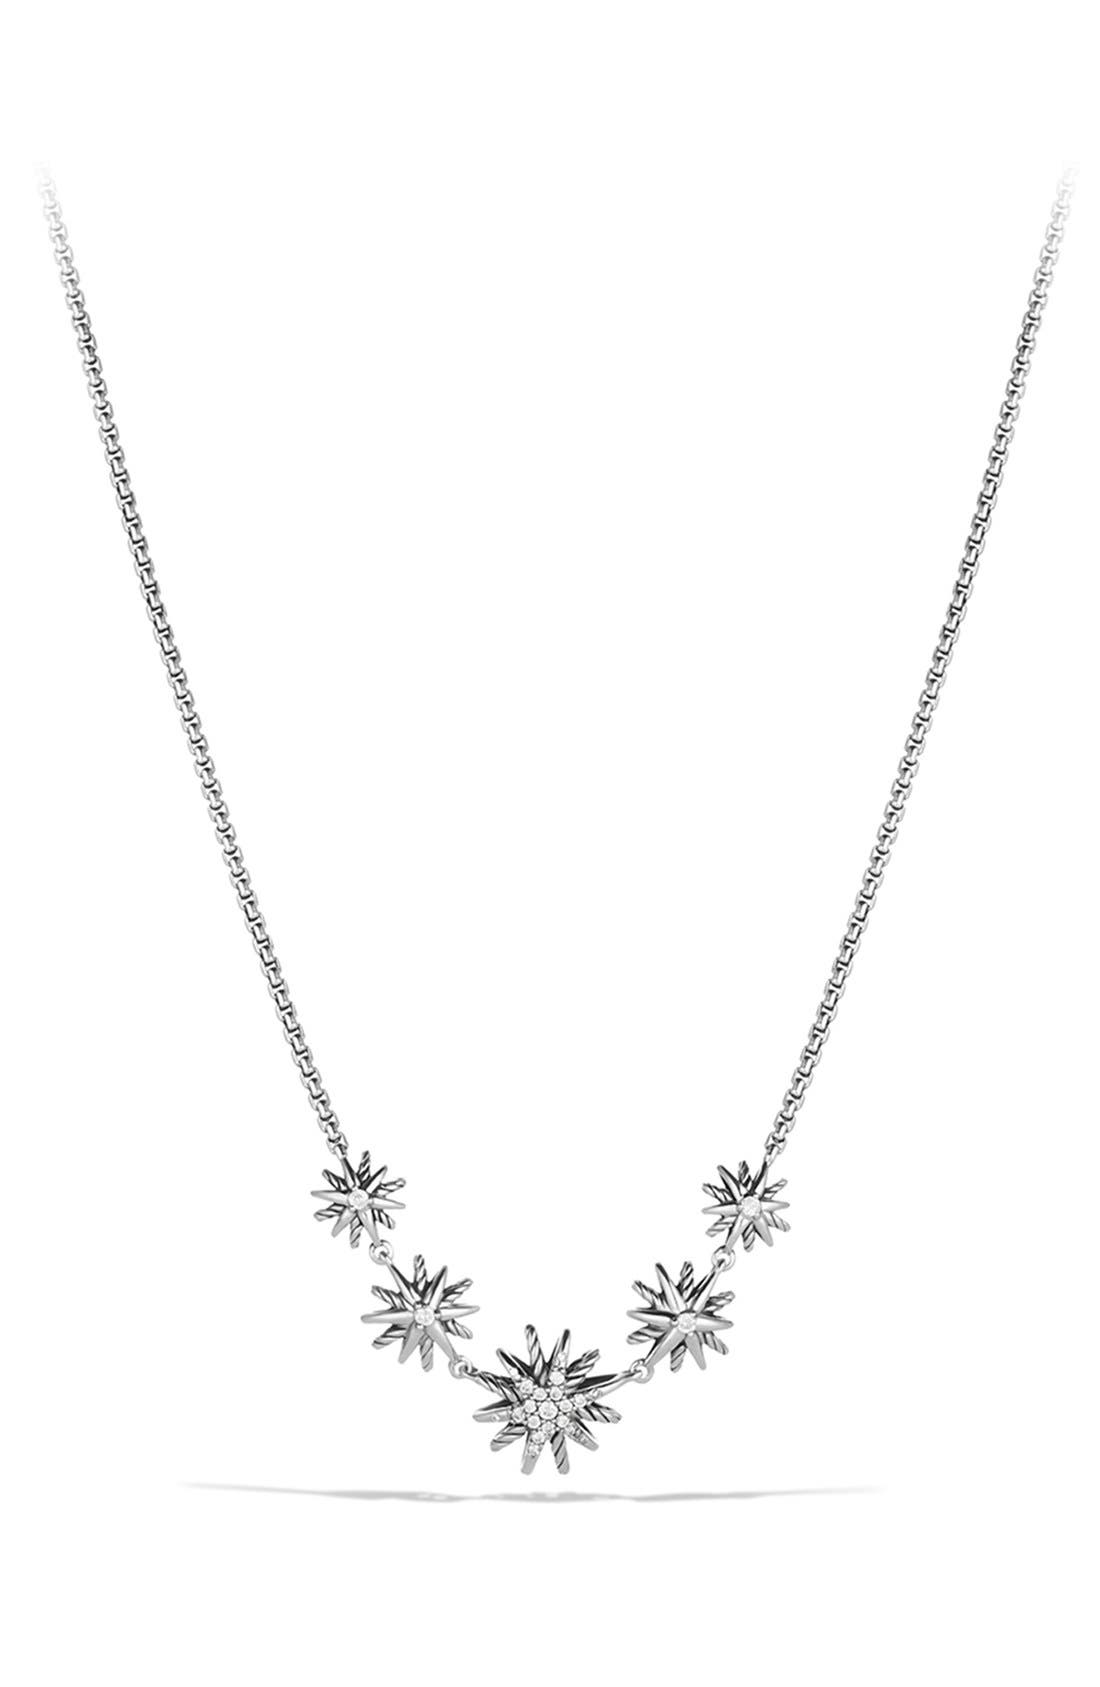 'Starburst' Five-Station Necklace with Diamonds,                             Main thumbnail 1, color,                             STERLING SILVER